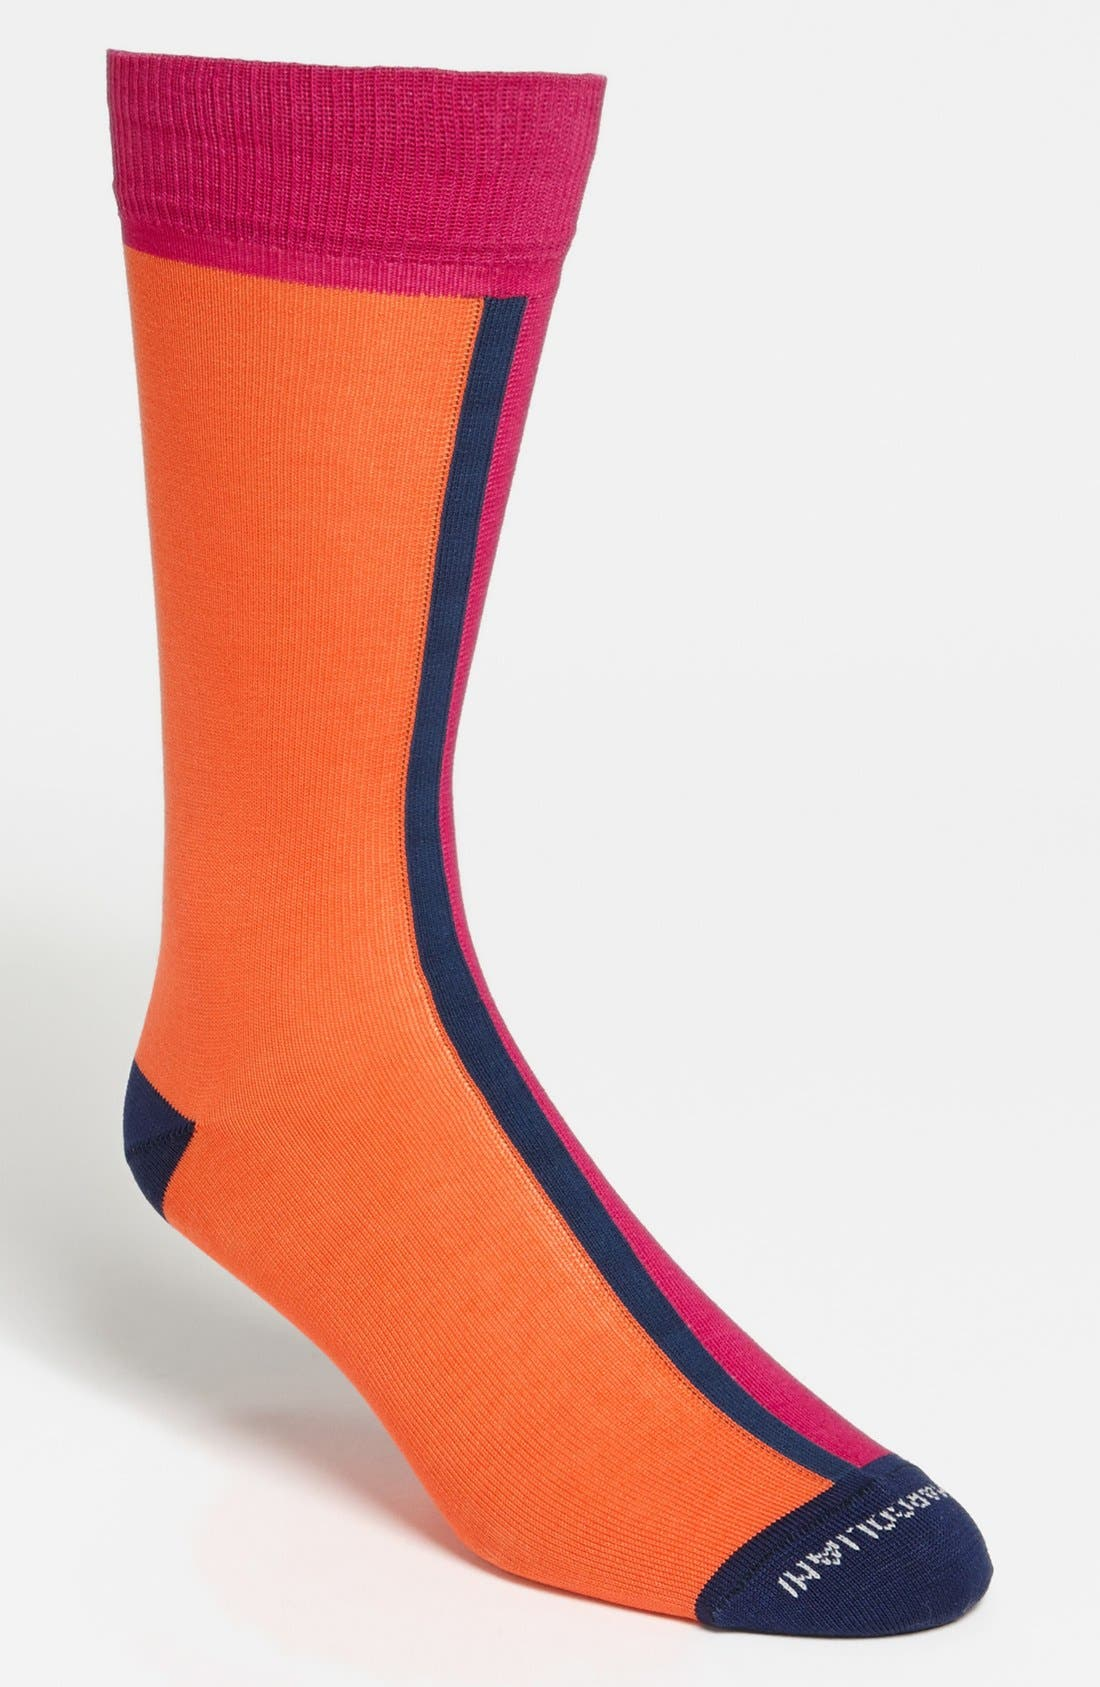 Alternate Image 1 Selected - Marcoliani 'In & Out' Socks